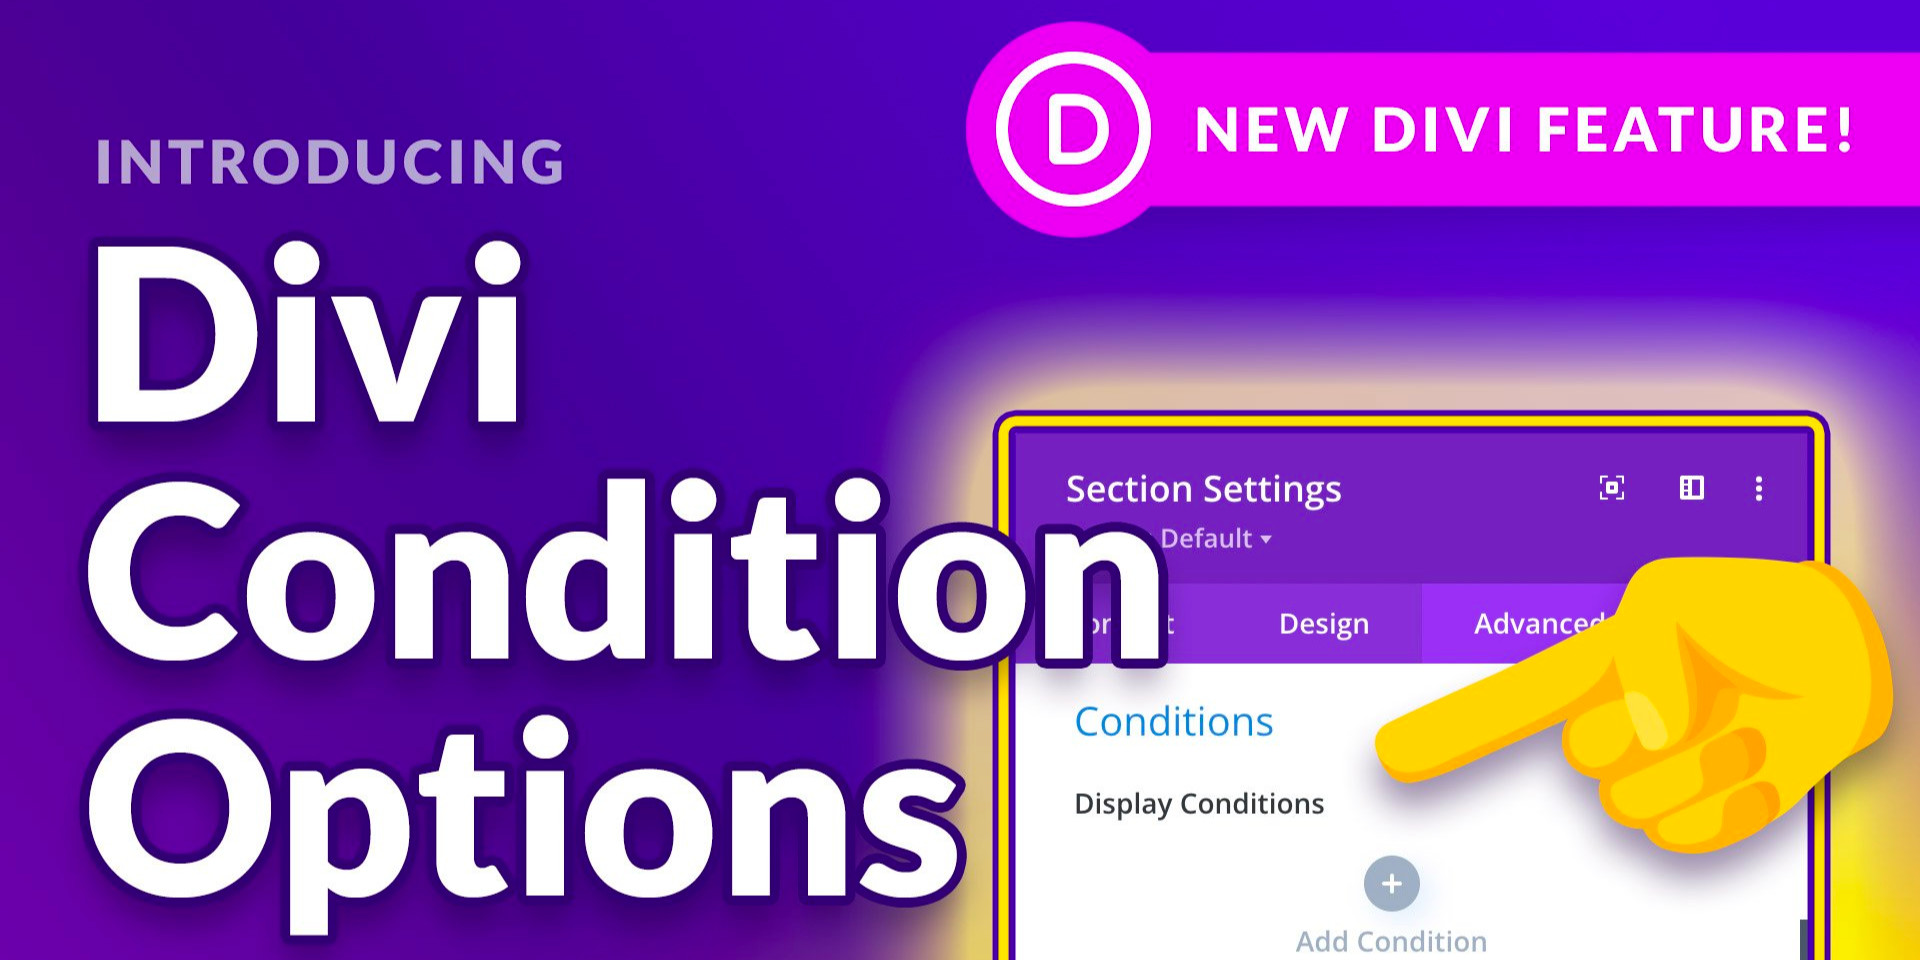 Condition Options